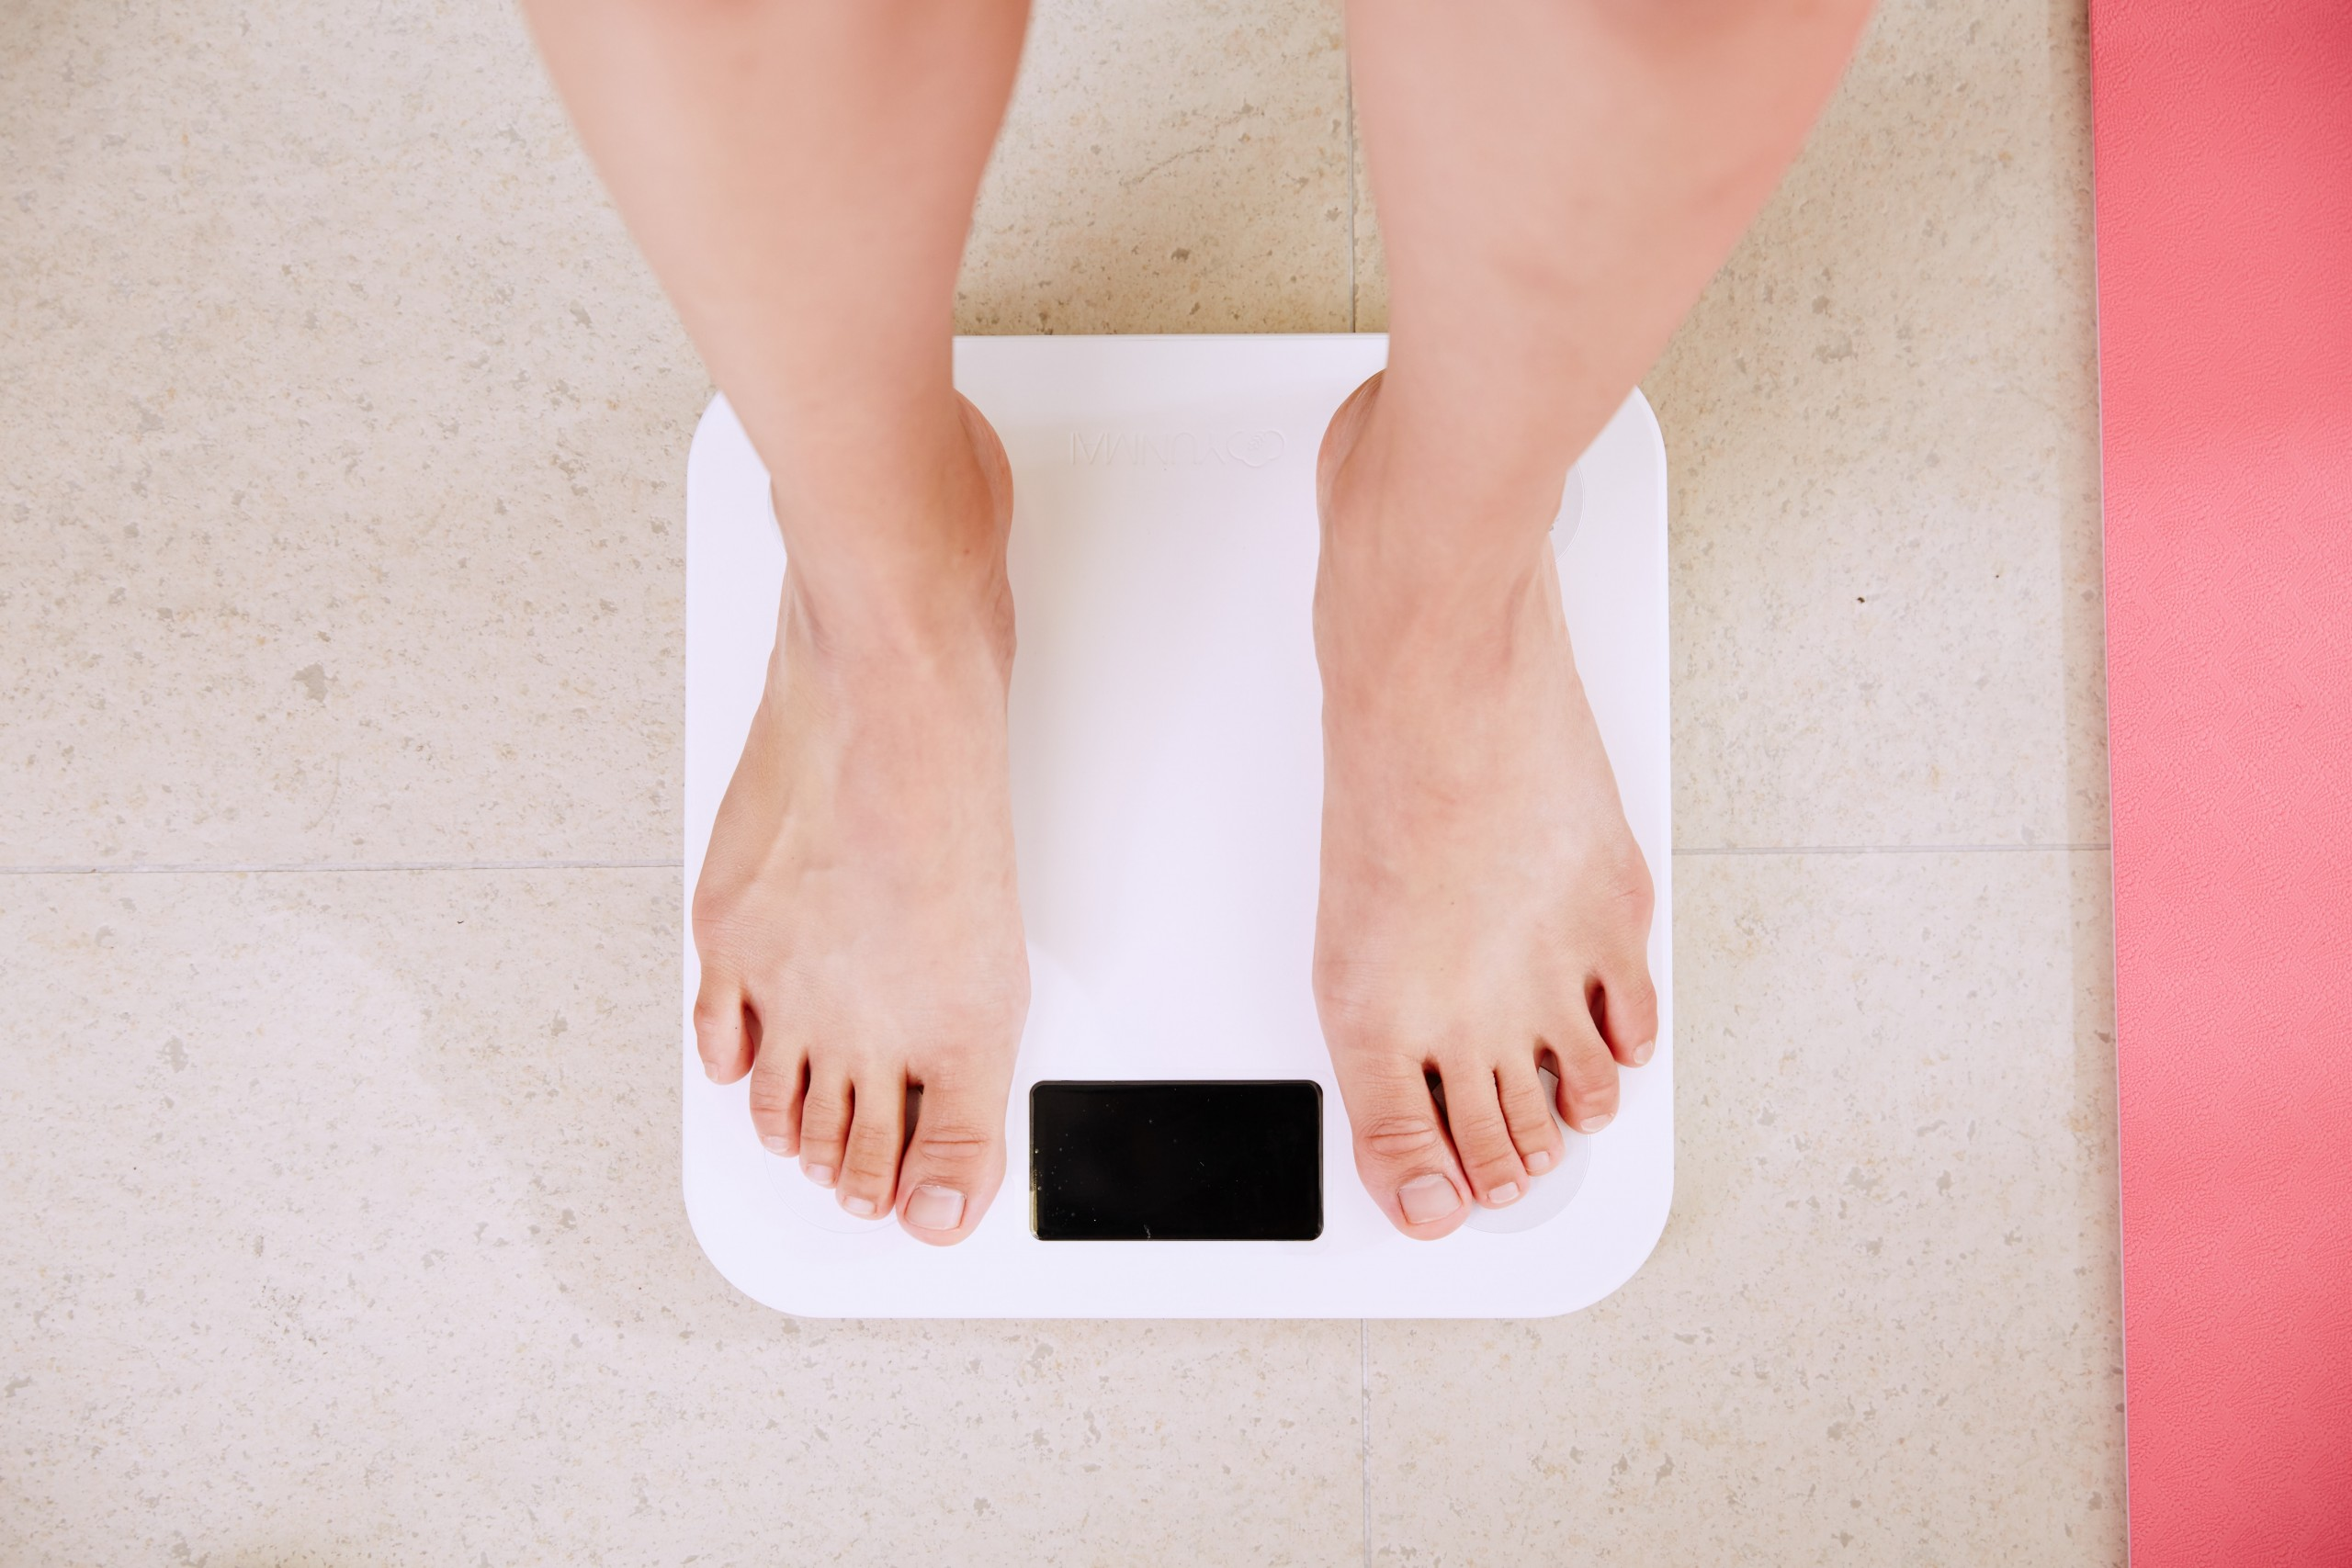 woman standing on a scale taking her weight